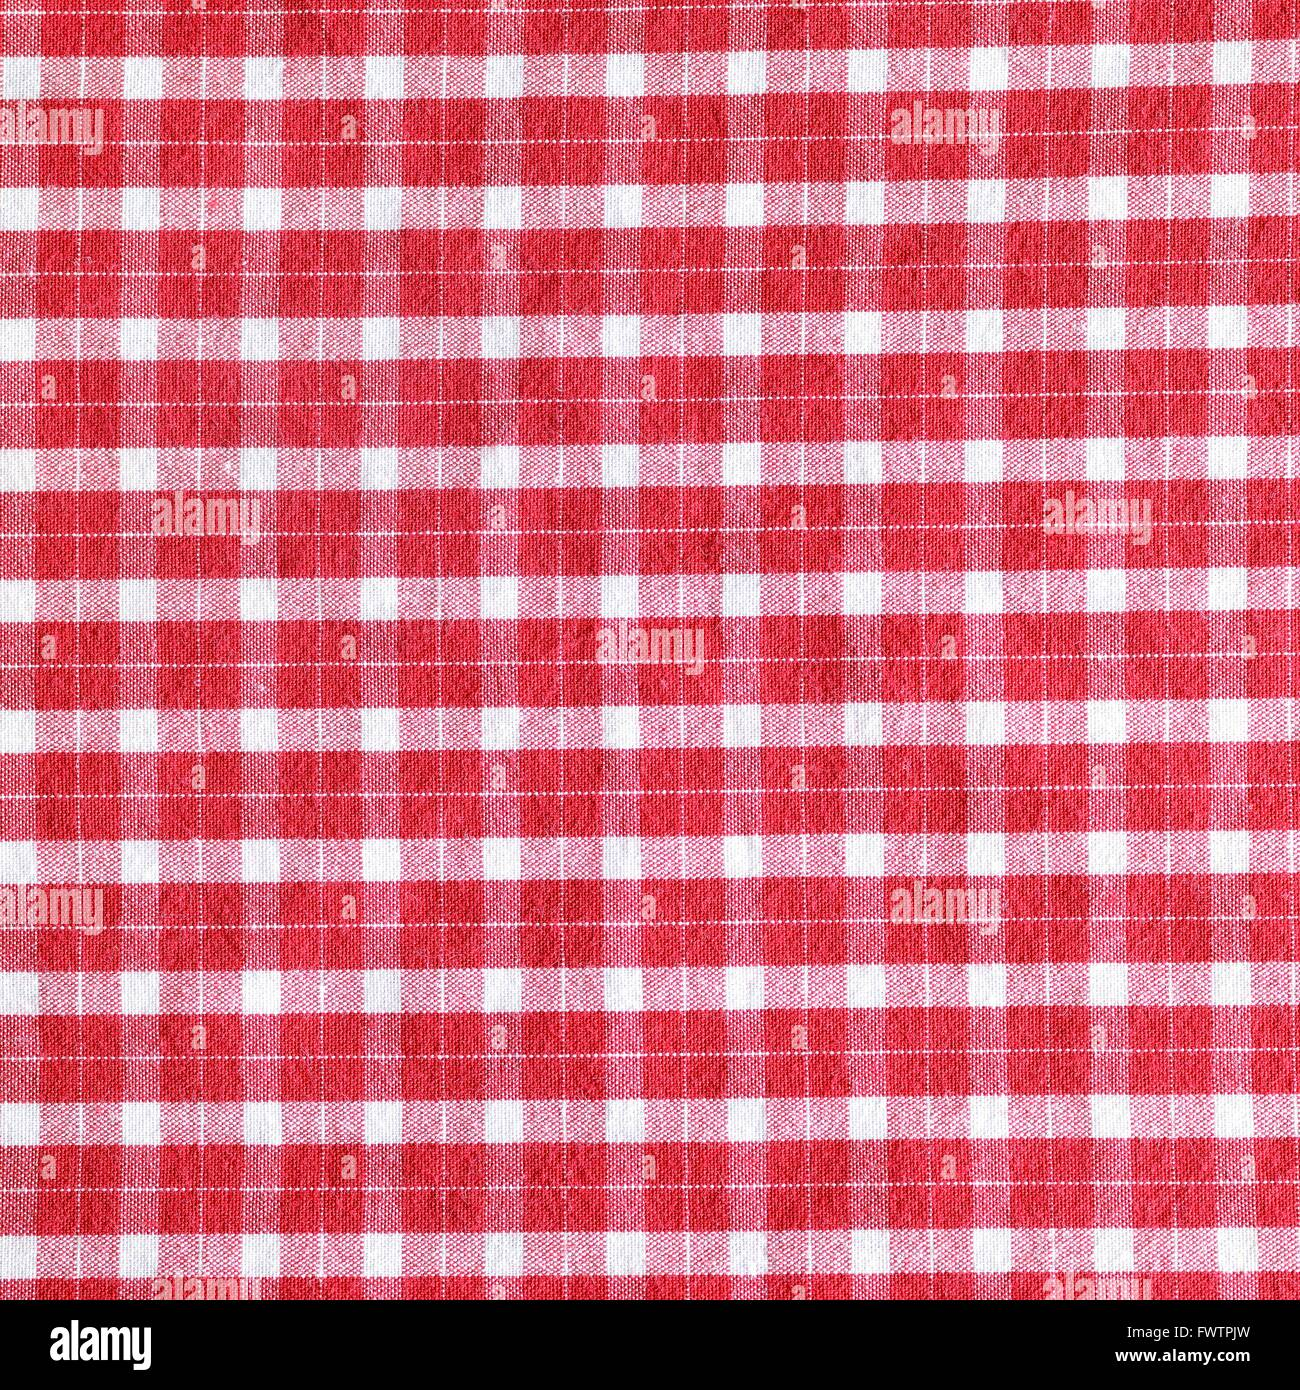 Red And White Gingham Tablecloth Pattern   Stock Image